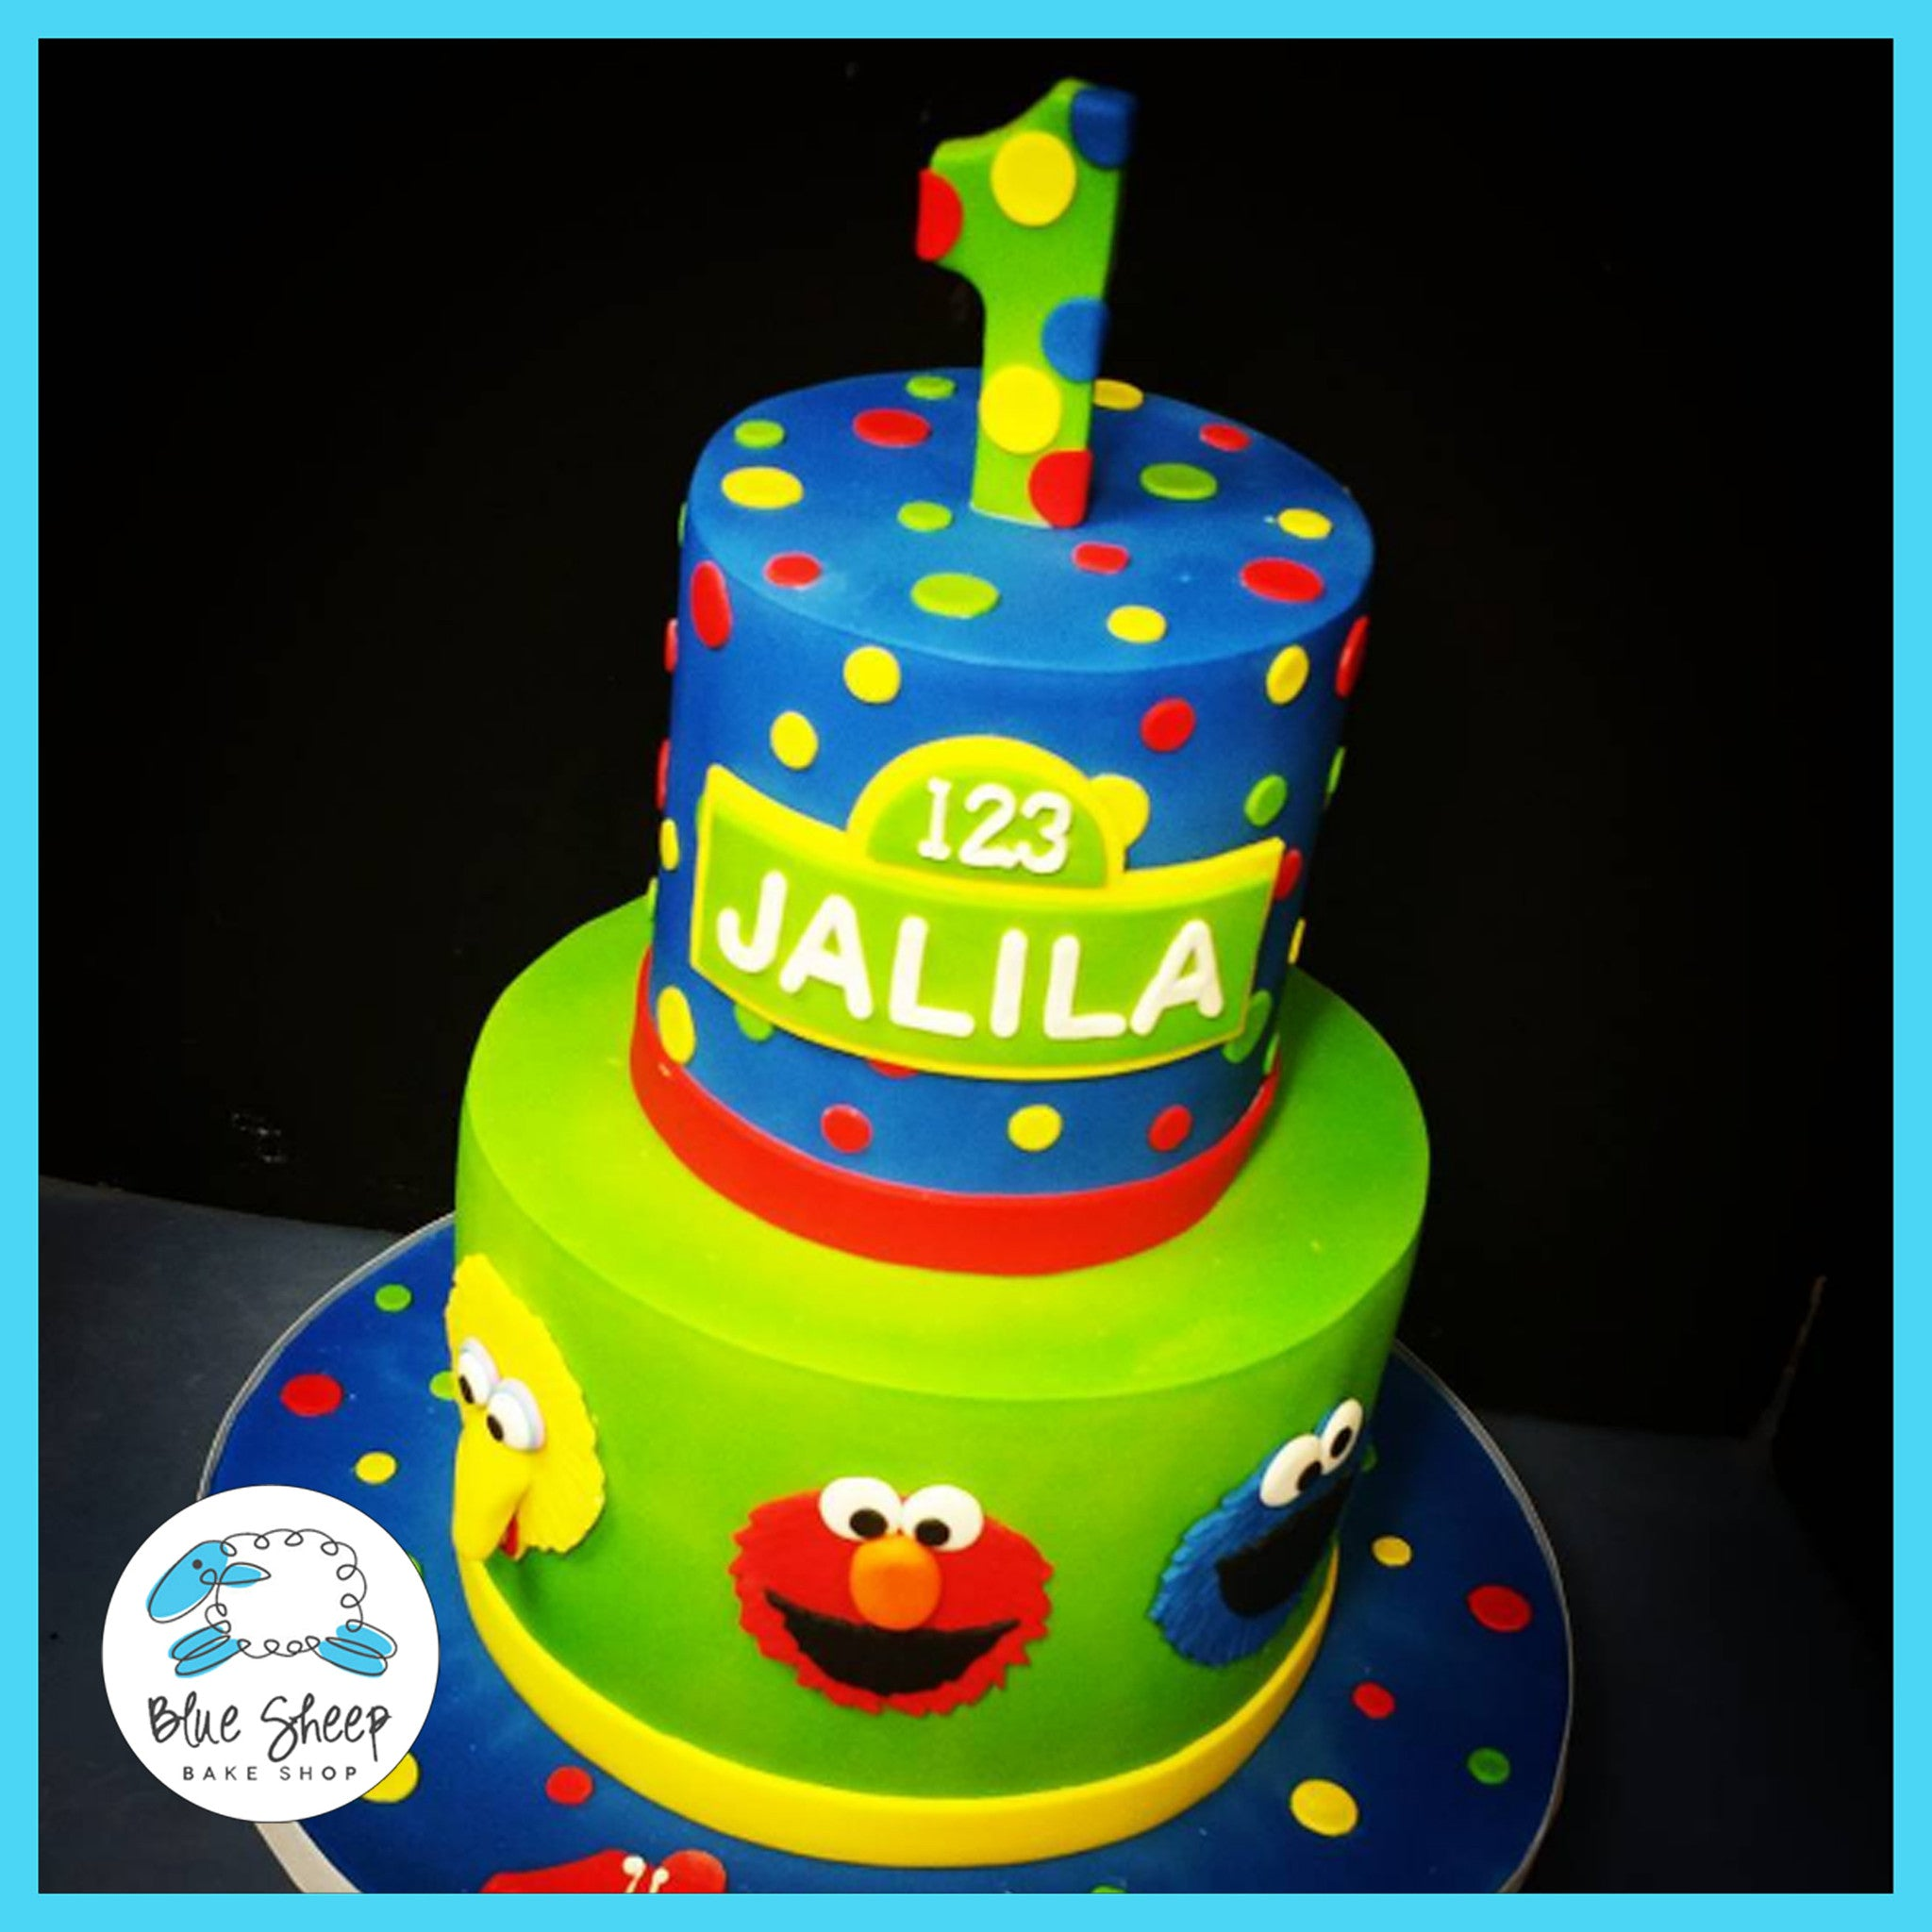 Swell Jalilas Sesame Street Cake Blue Sheep Bake Shop Personalised Birthday Cards Paralily Jamesorg